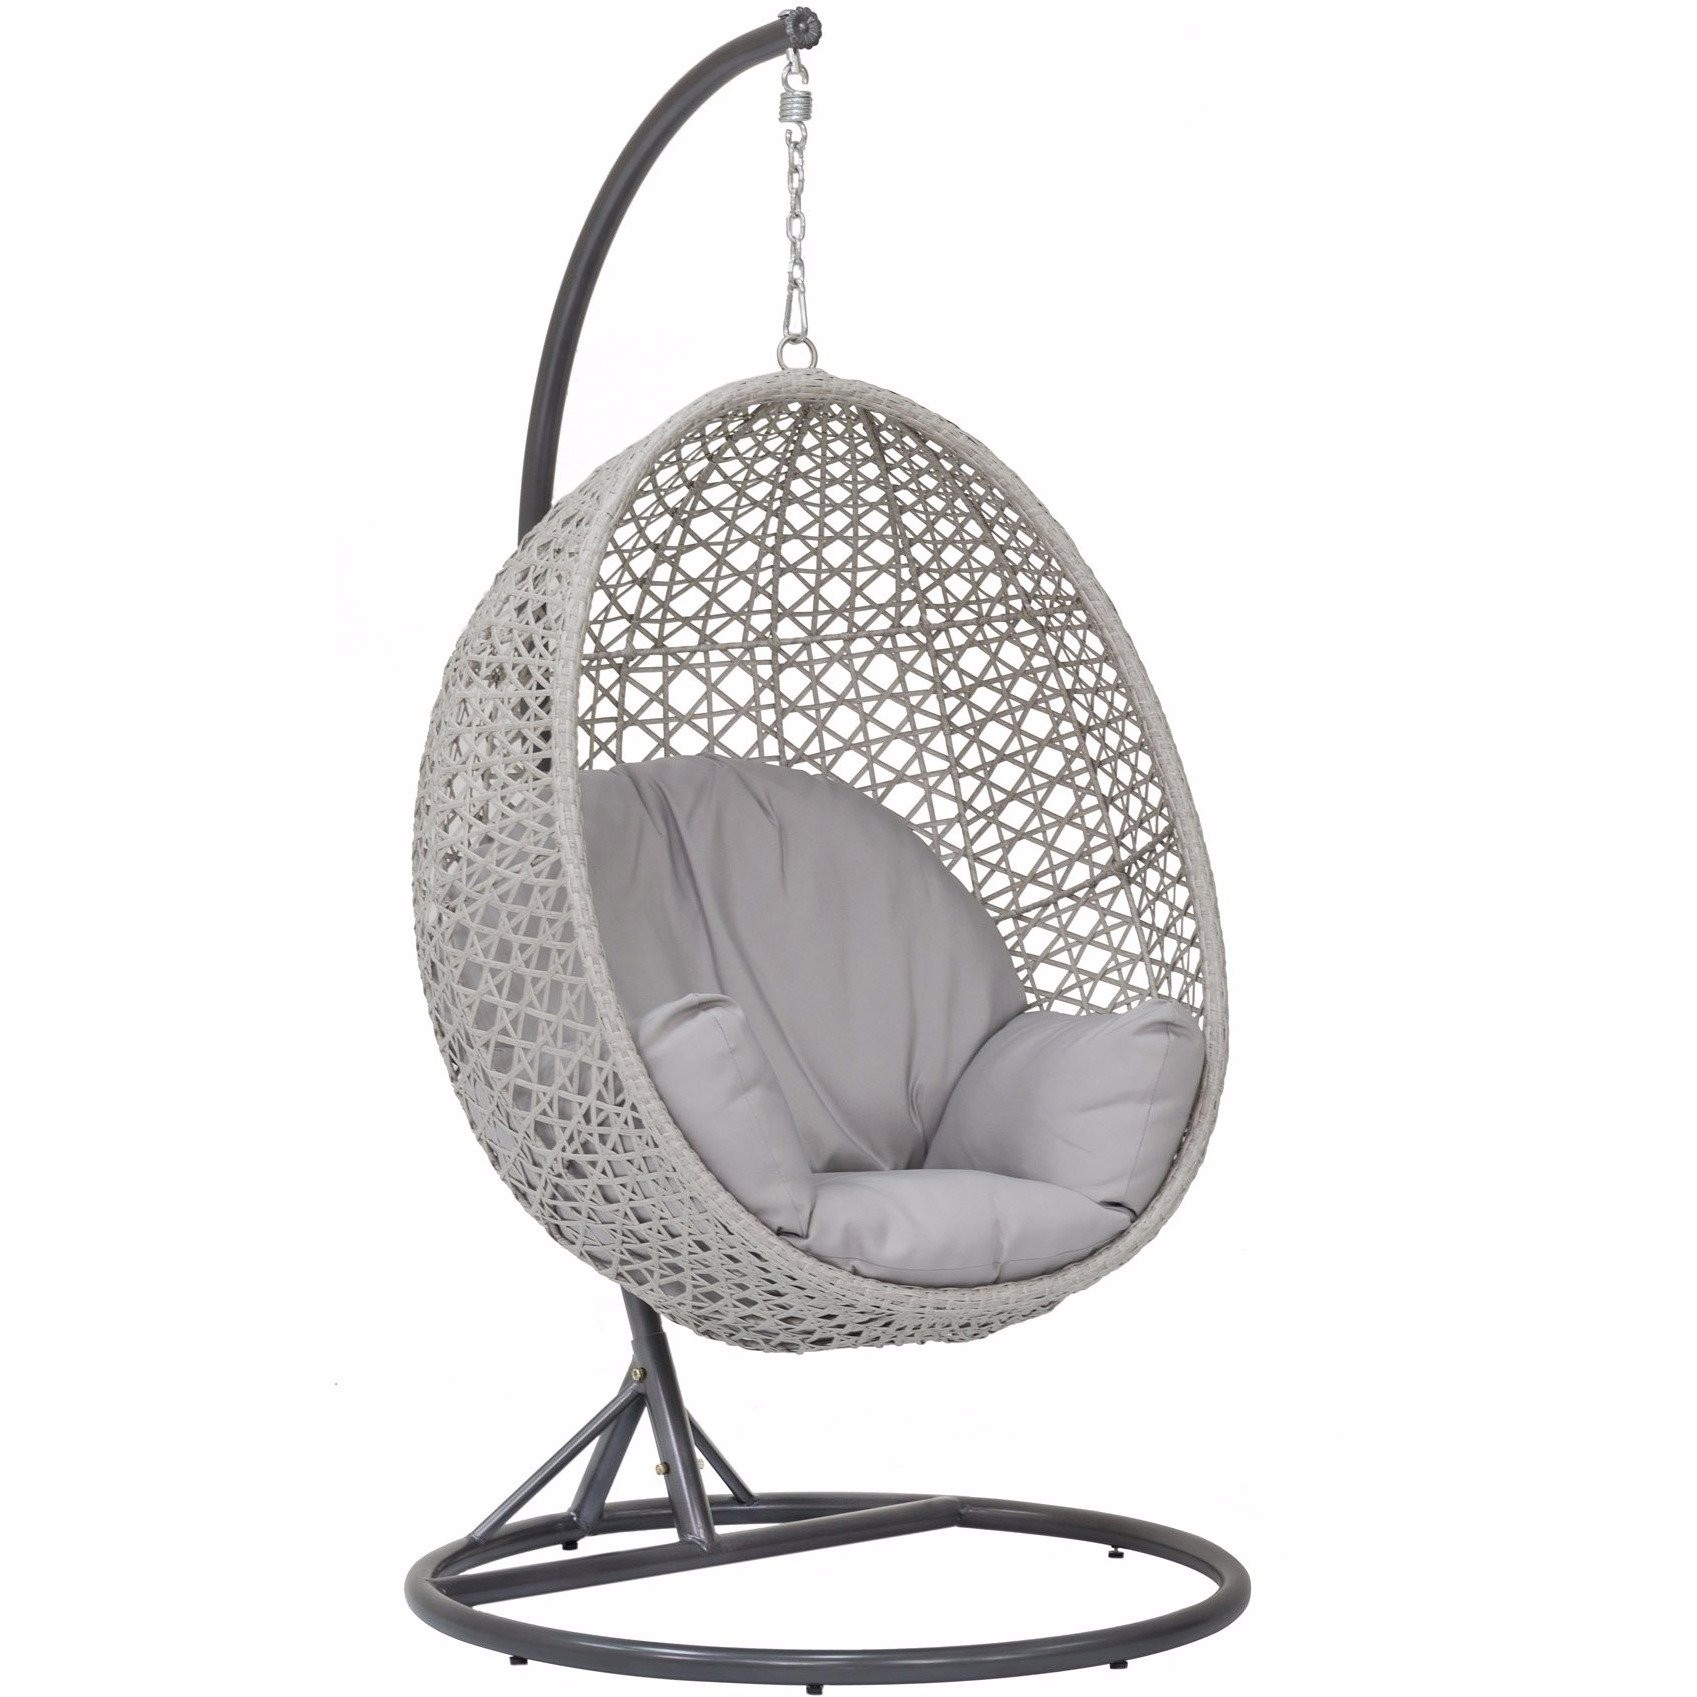 China Garden Egg Swing Chair Supplier Manufacturers, China Garden Egg Swing Chair Supplier Factory, Supply China Garden Egg Swing Chair Supplier